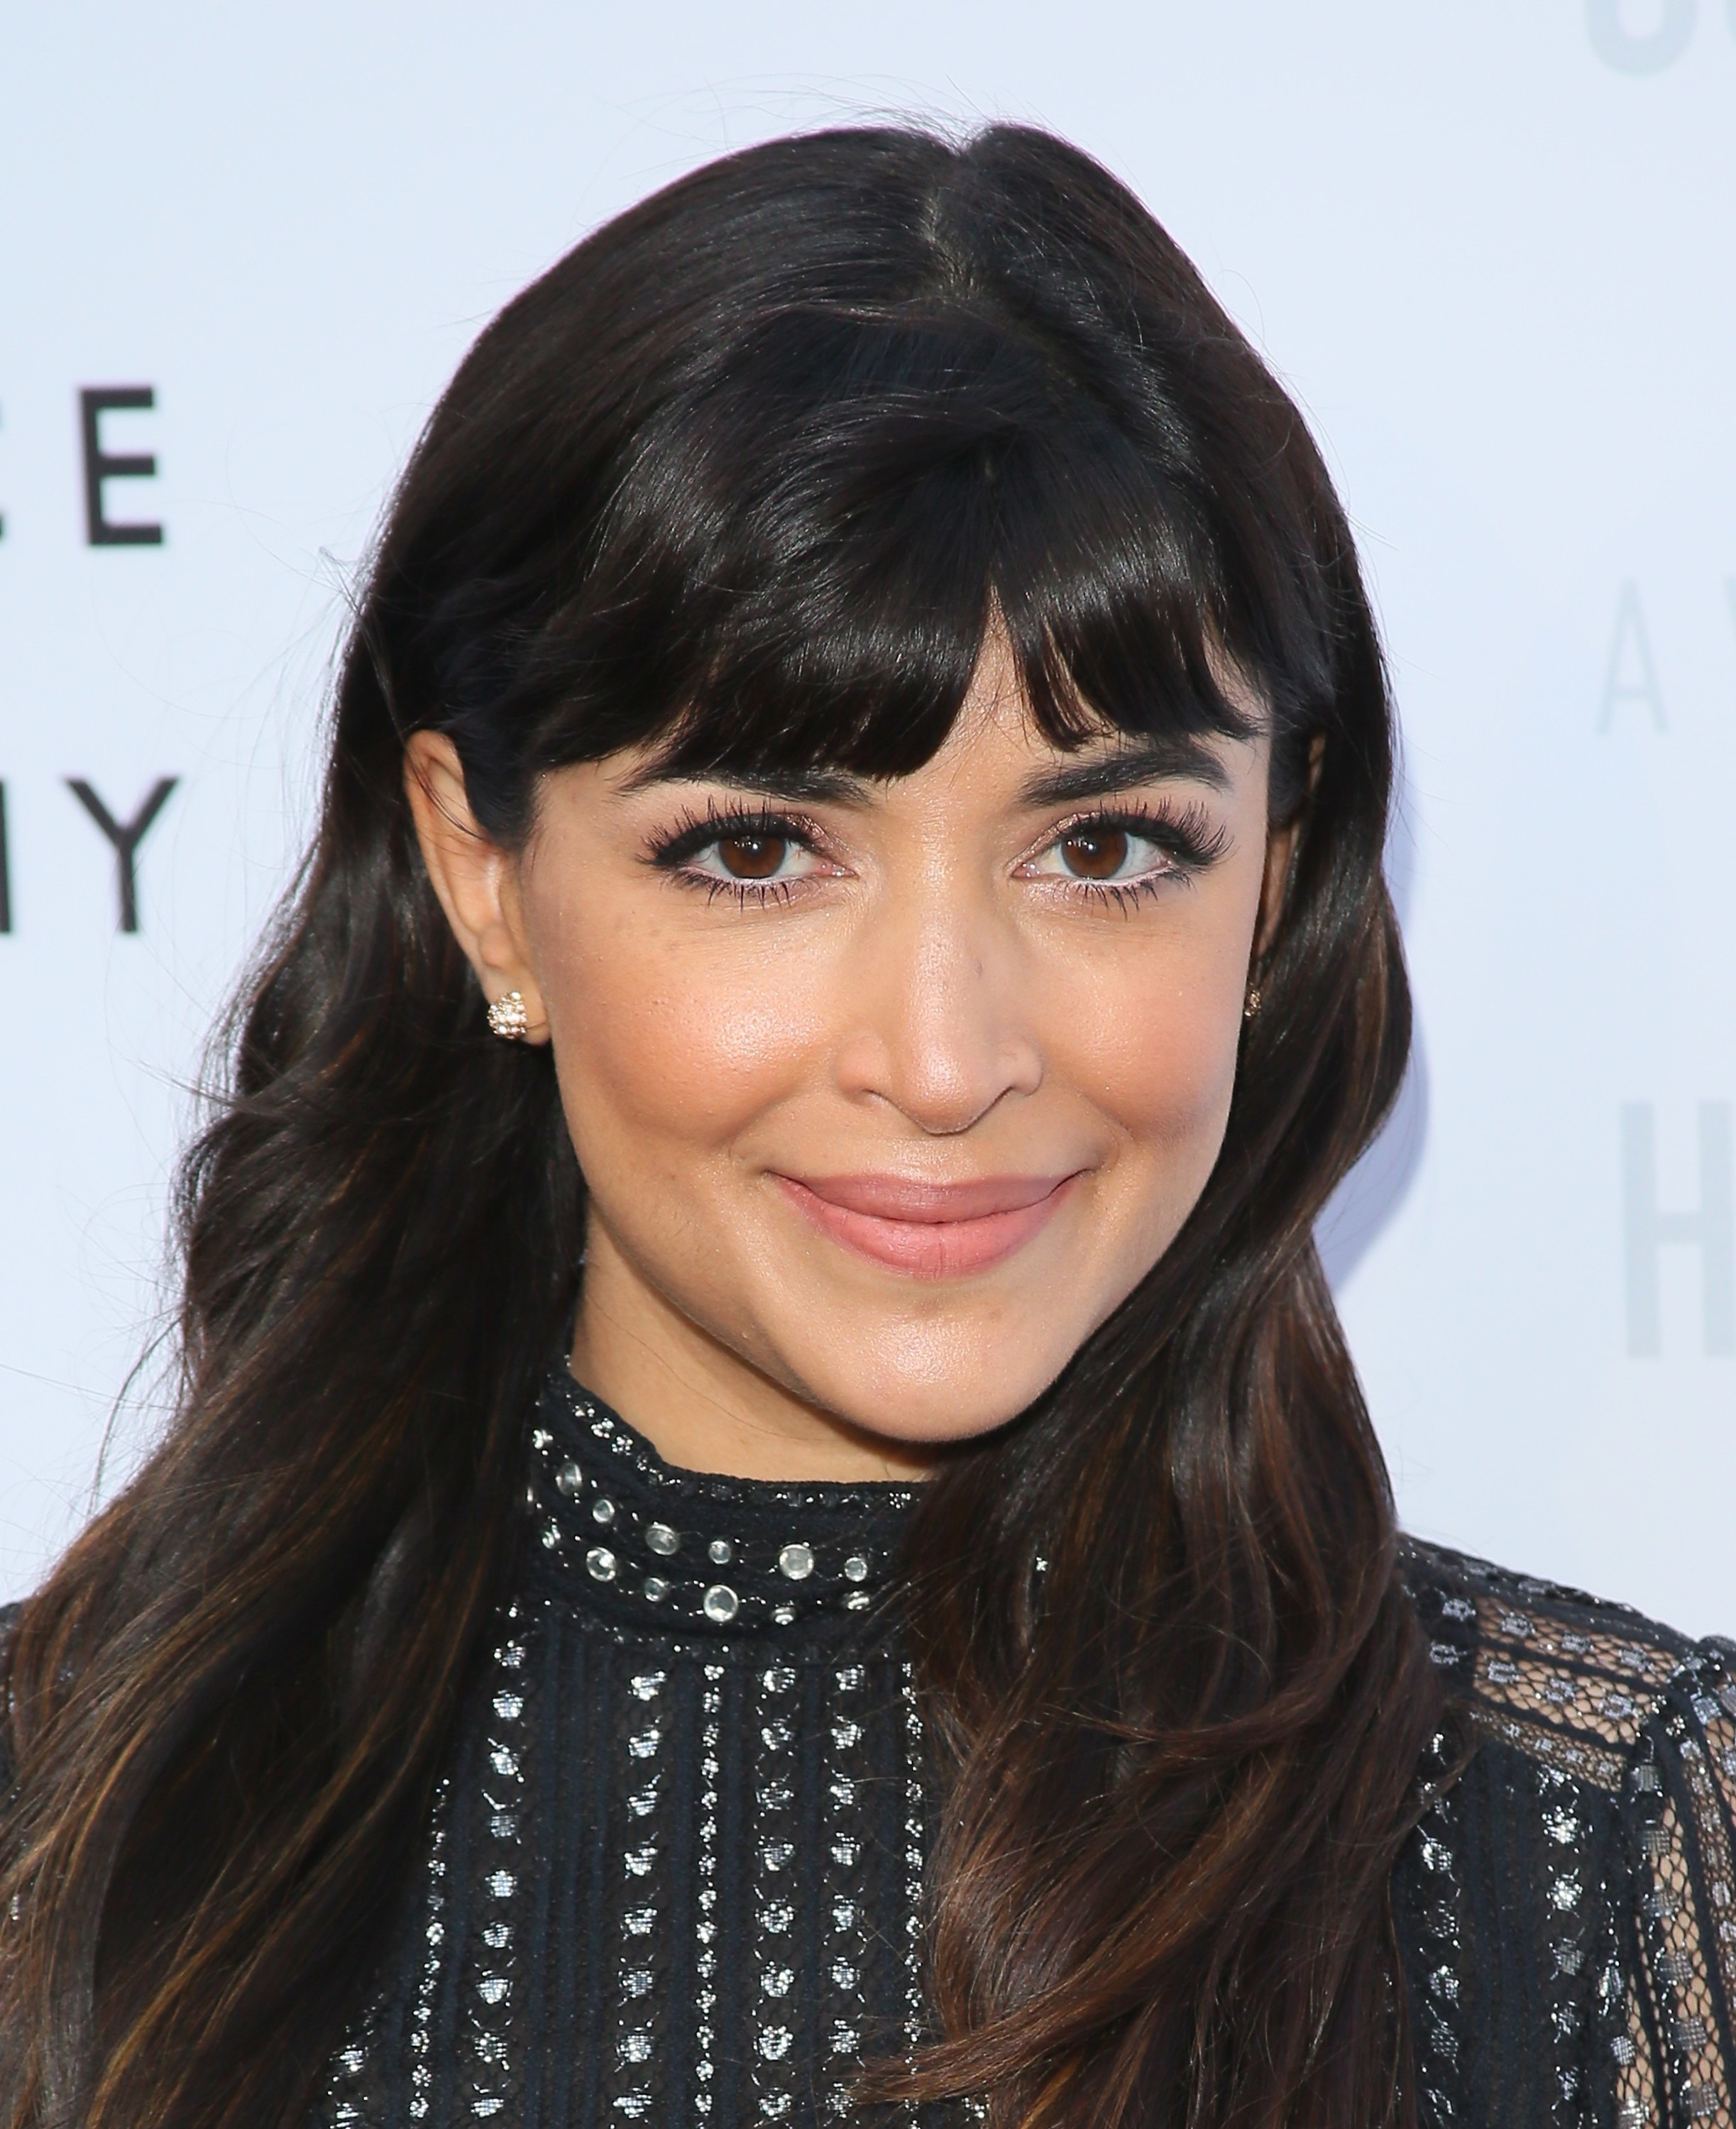 Hannah Simone wears a jeweled black dress with a high collar and her hair down in slight waves